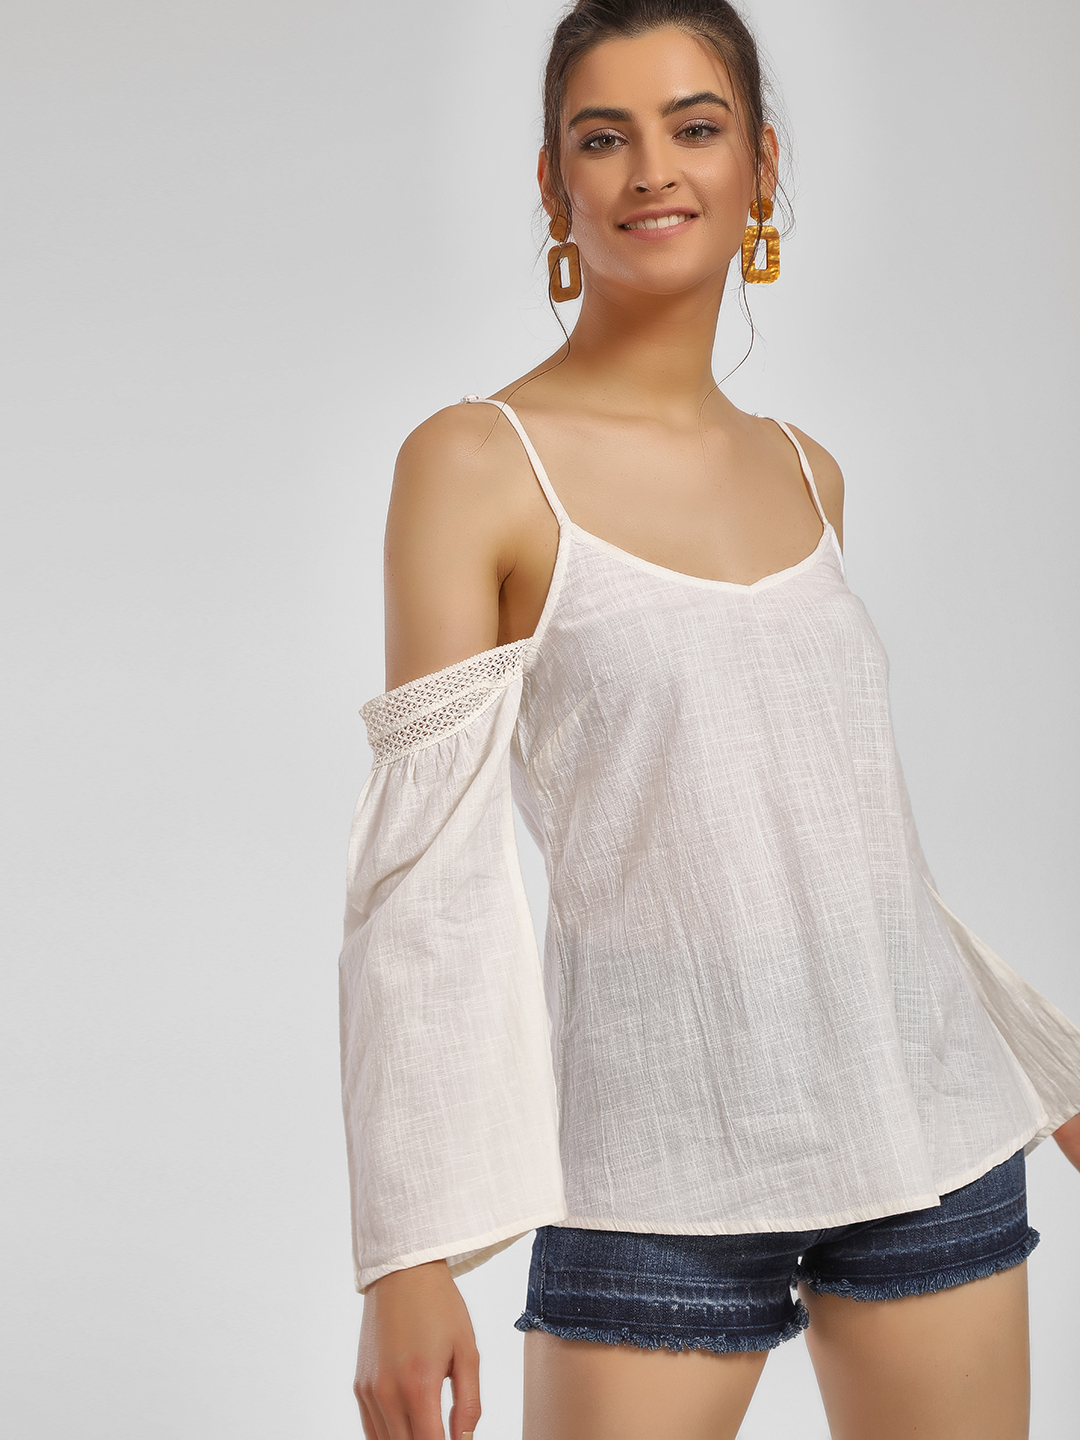 MIWAY White Lace Cold Shoulder Top 1